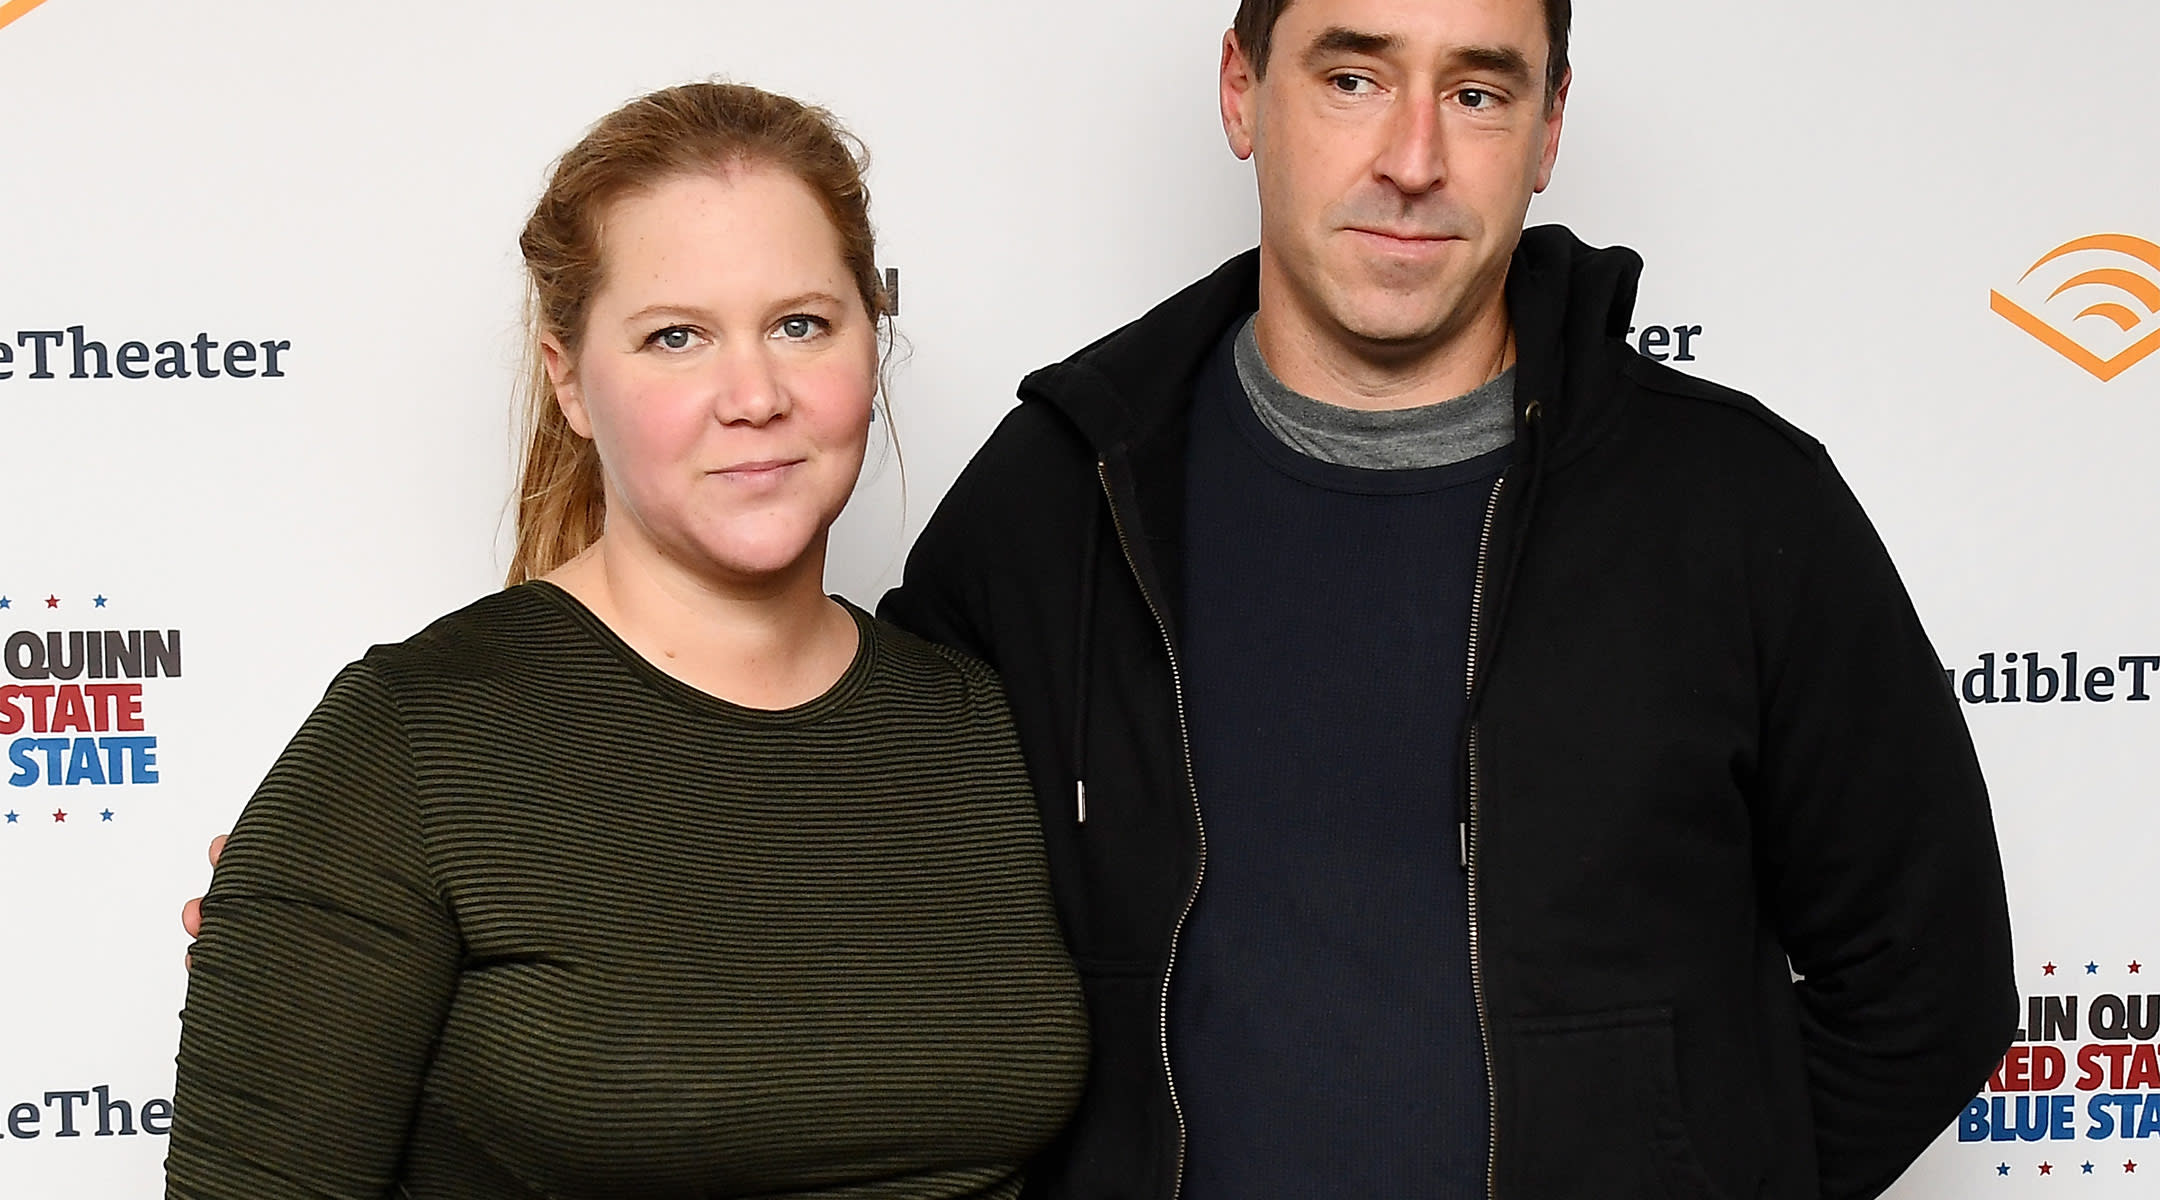 amy schumer has to cancel tour dates due to hyperemesis gravidarum